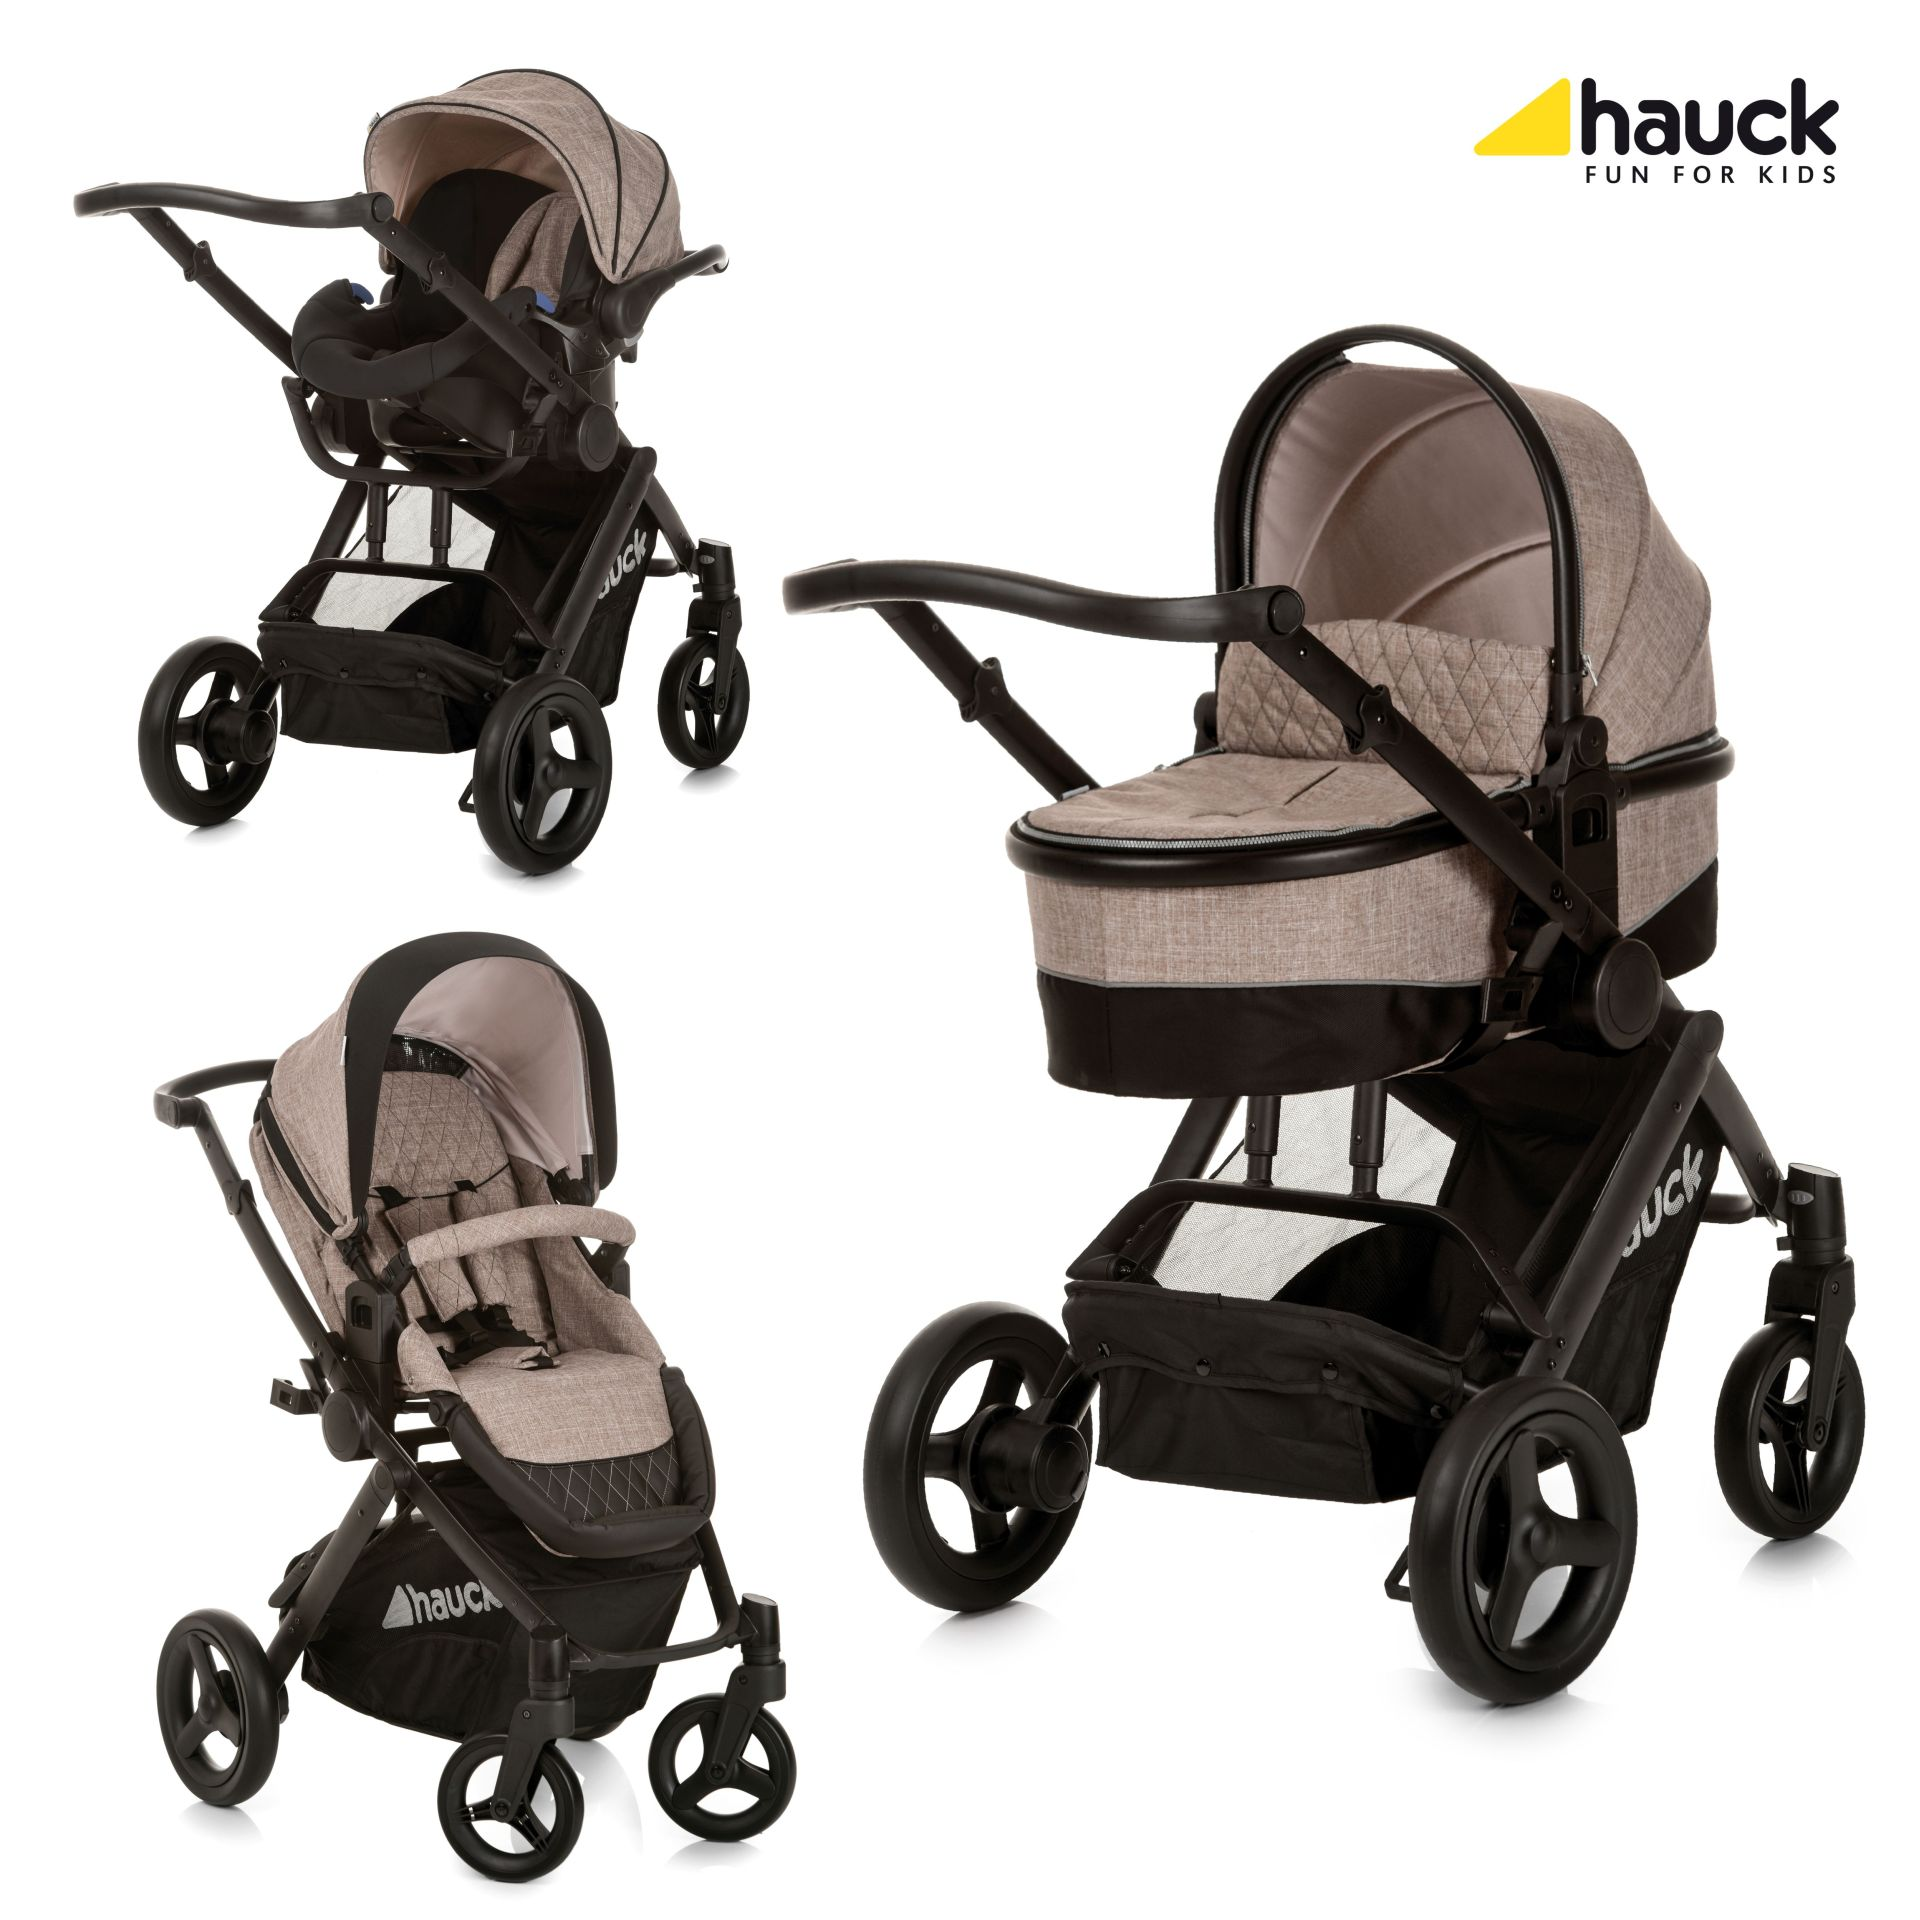 I additionally TS5 Maxi Cosi Mico besides Best New Strollers 2015 likewise Promenade Double Kit together with Sport. on car seat stroller 2 in 1